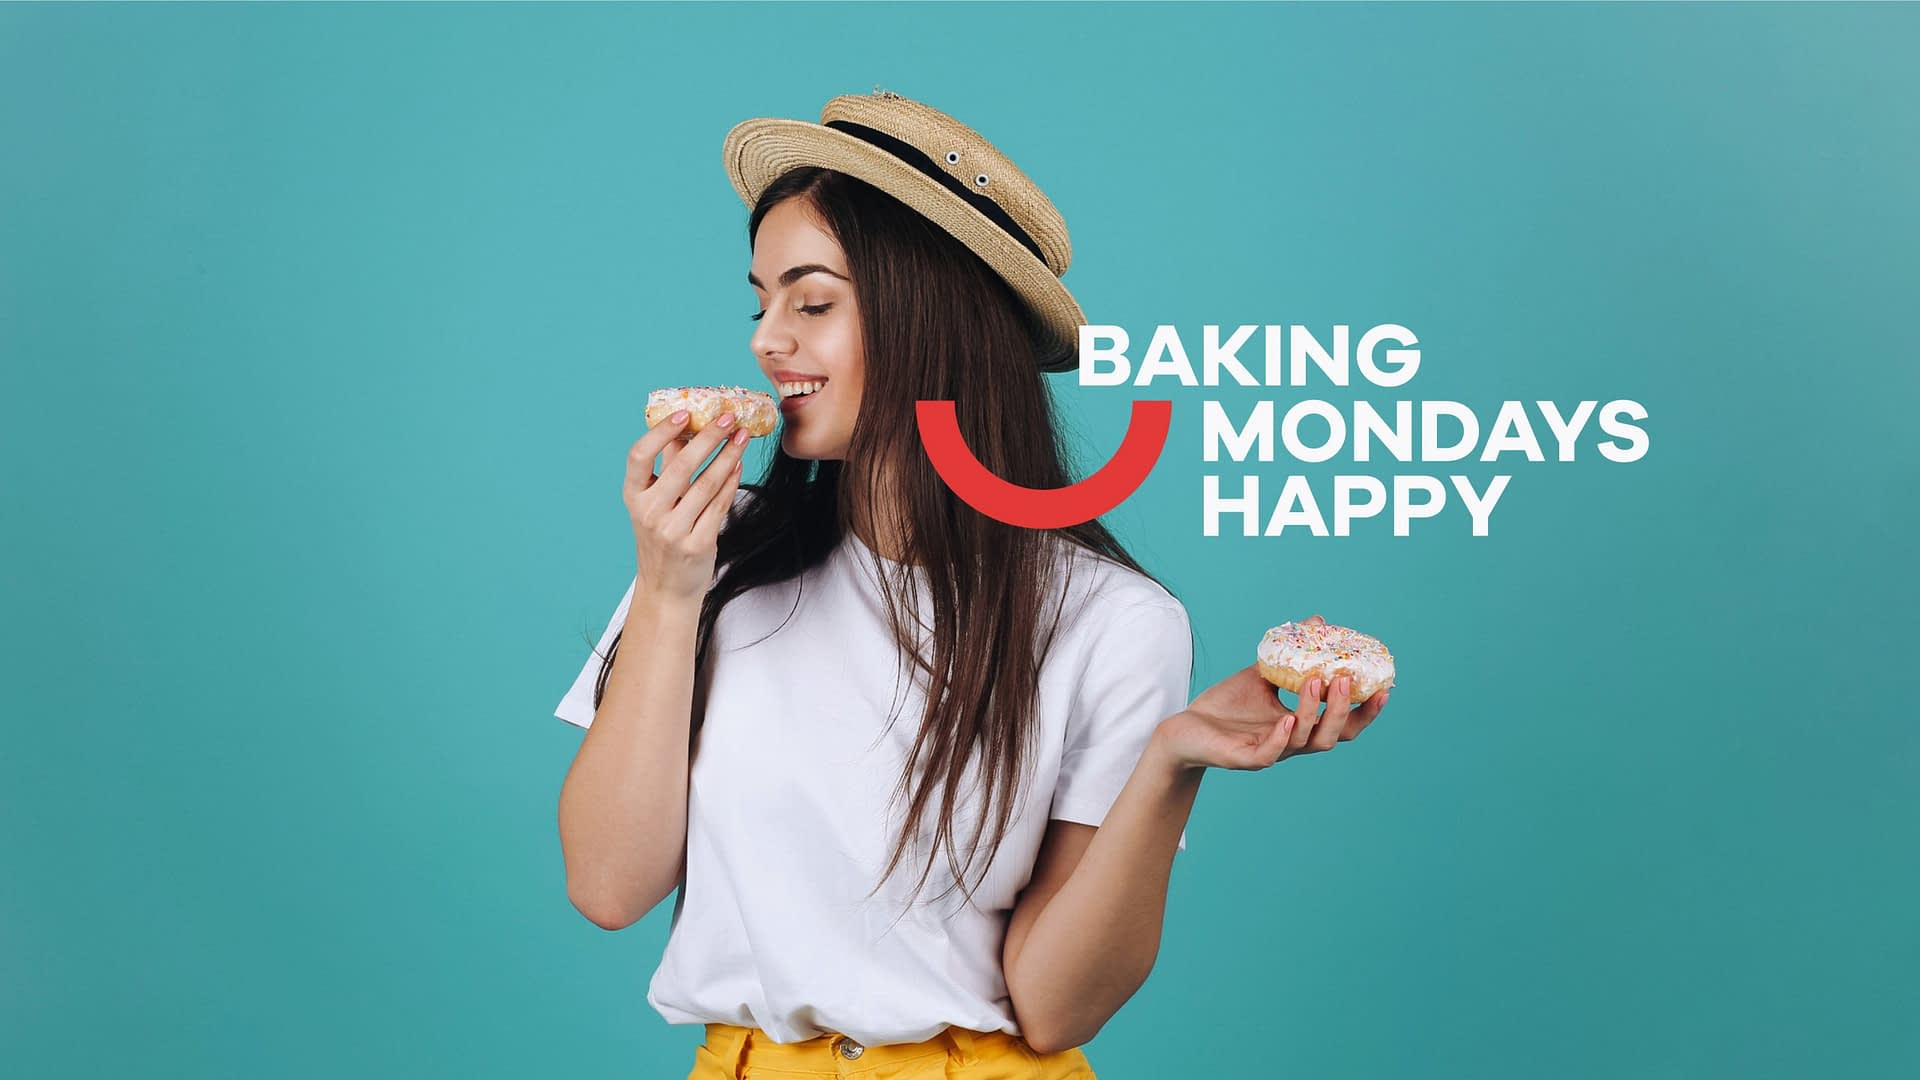 THE MUFFIN HOUSE BAKING YOU HAPPY CAMPAIGN 2